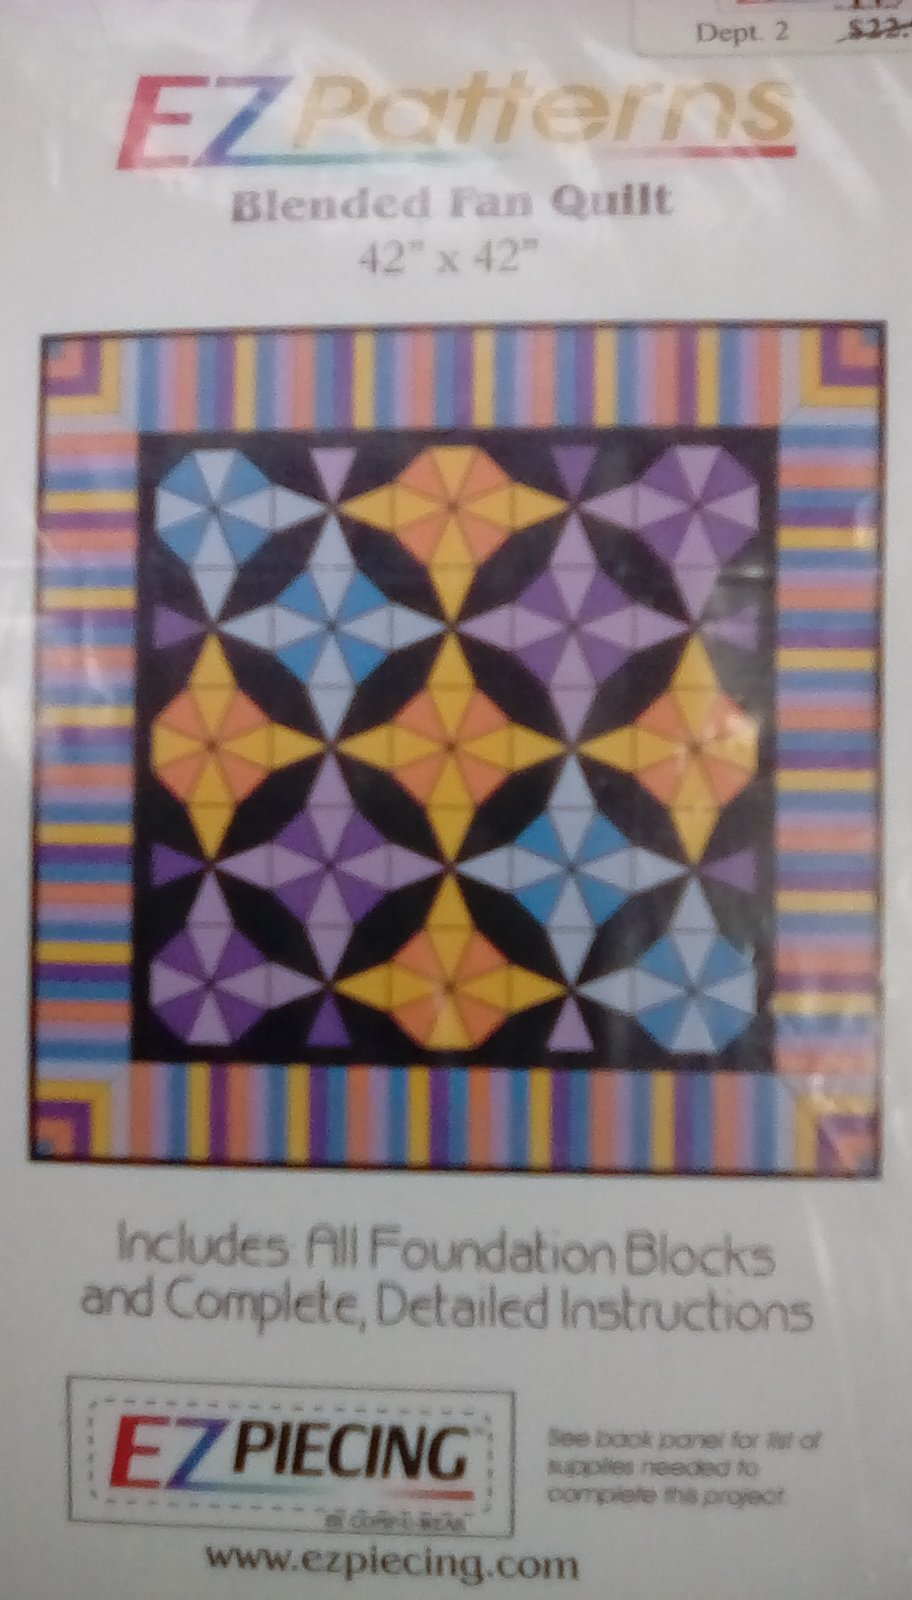 Blended Fan Quilt EZ pattern